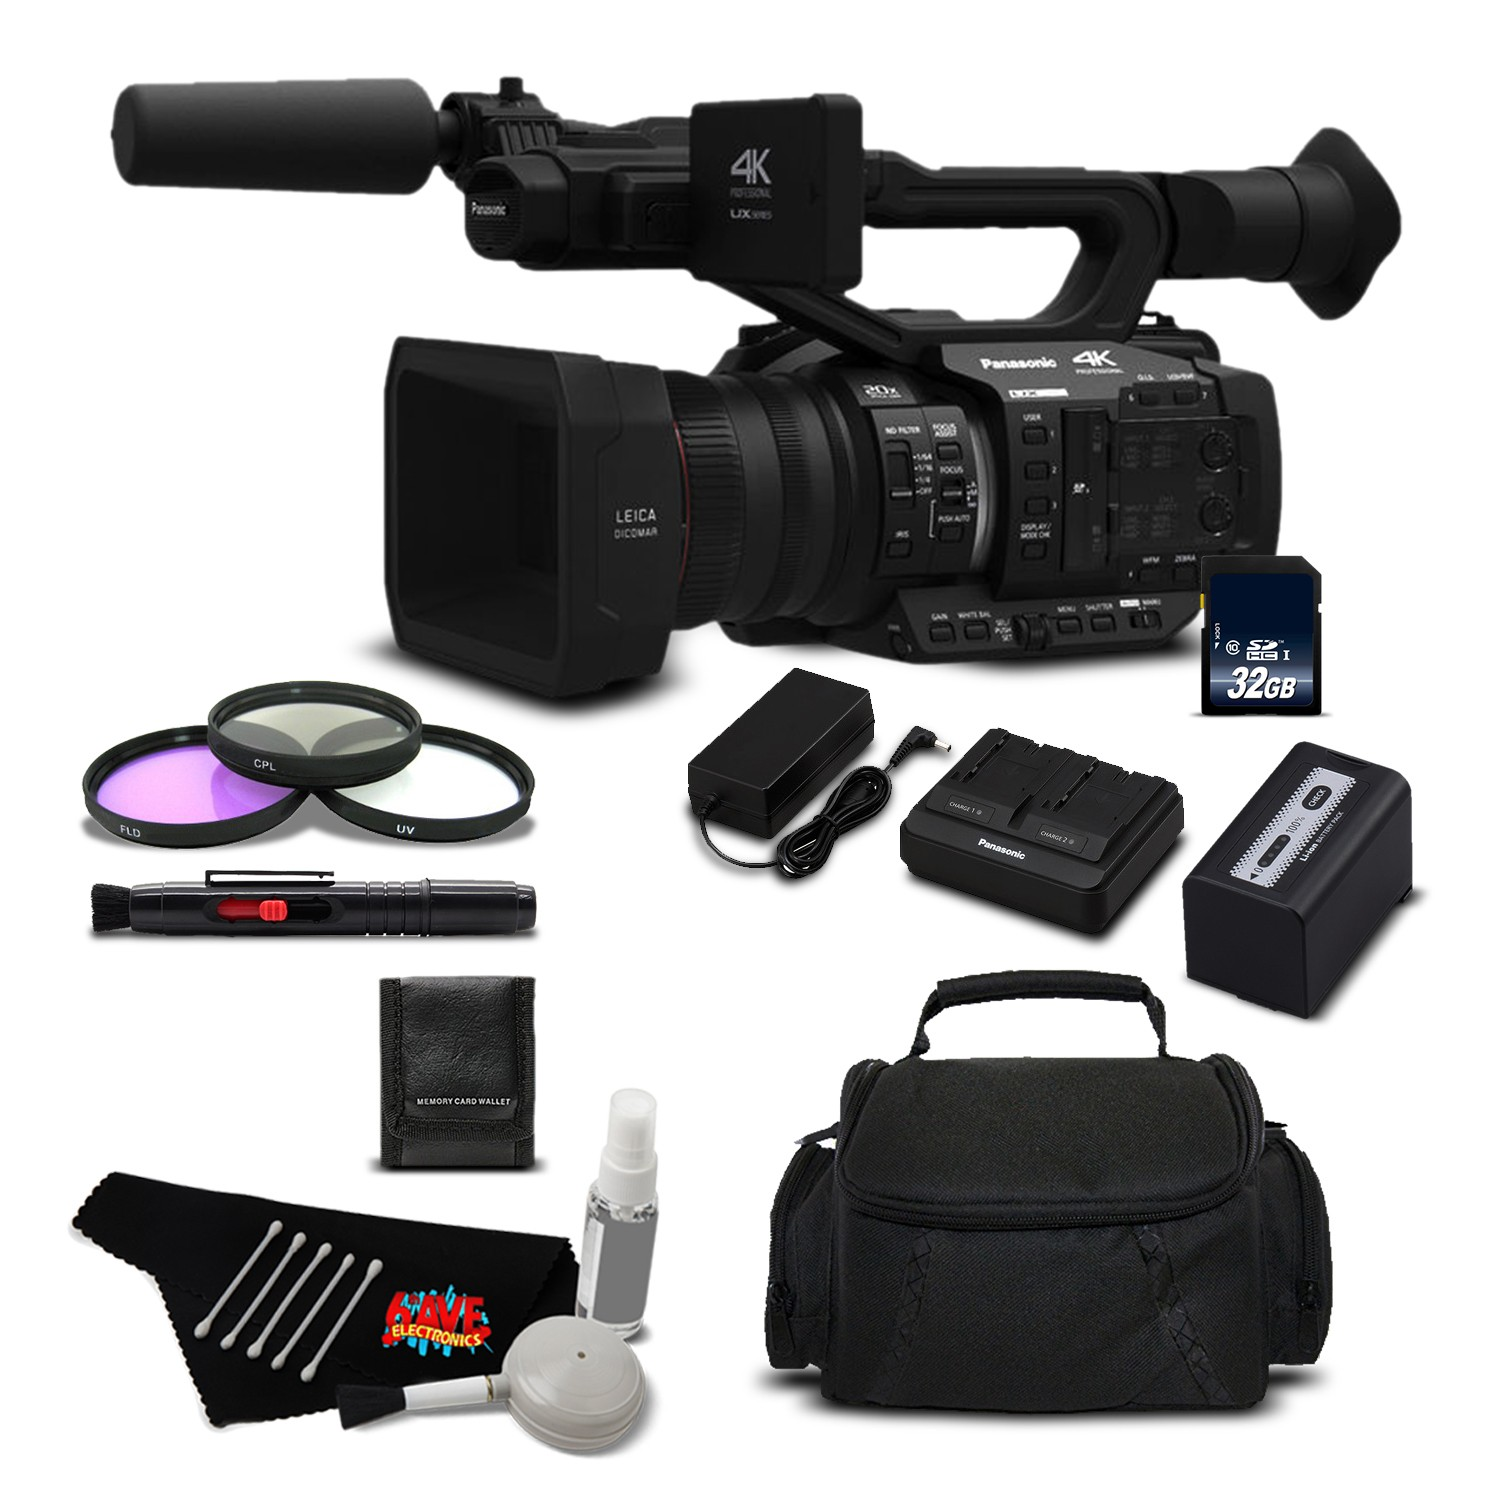 Panasonic AG-UX180 4K Premium Professional Camcorder International Version (No Warranty) + 64GB SDXC Class 10 Memory Card + Carrying Case + Sony MDR-7506 Headphone + Lens Pen Cleaner Bundle